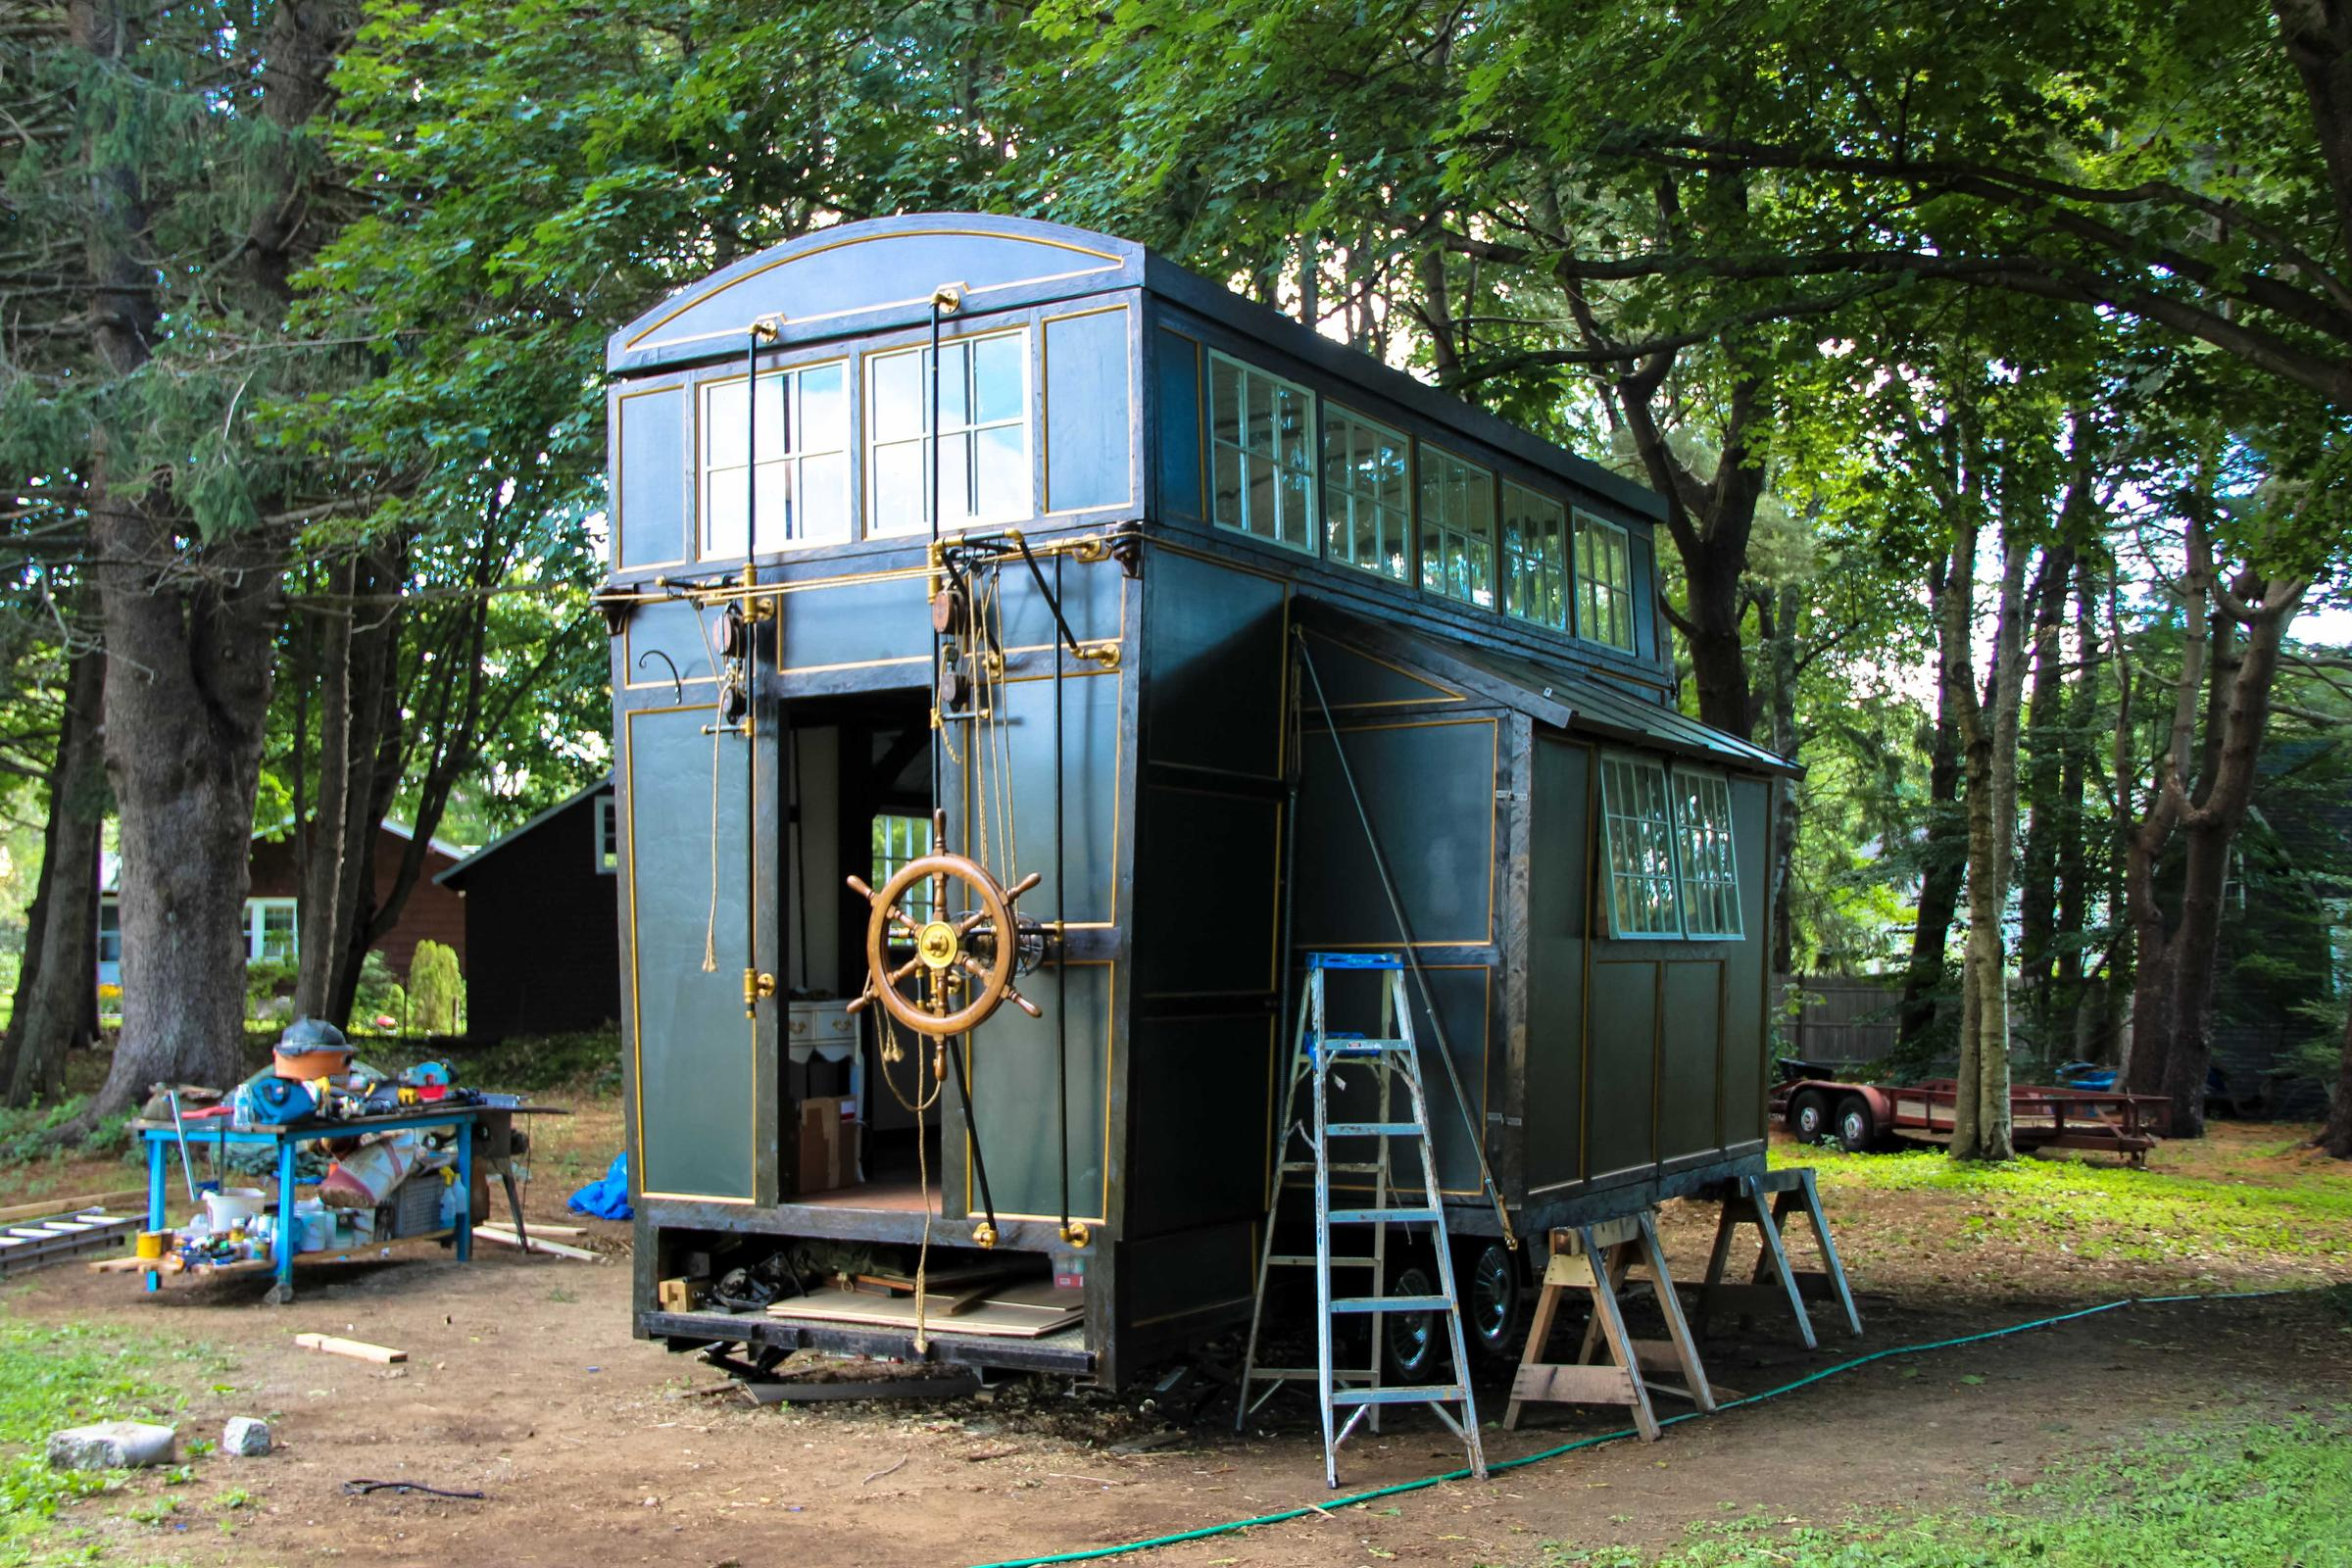 Brilliant Steampunk Steamer Trunk A Tiny House Contraption On Wheels Home Interior And Landscaping Oversignezvosmurscom